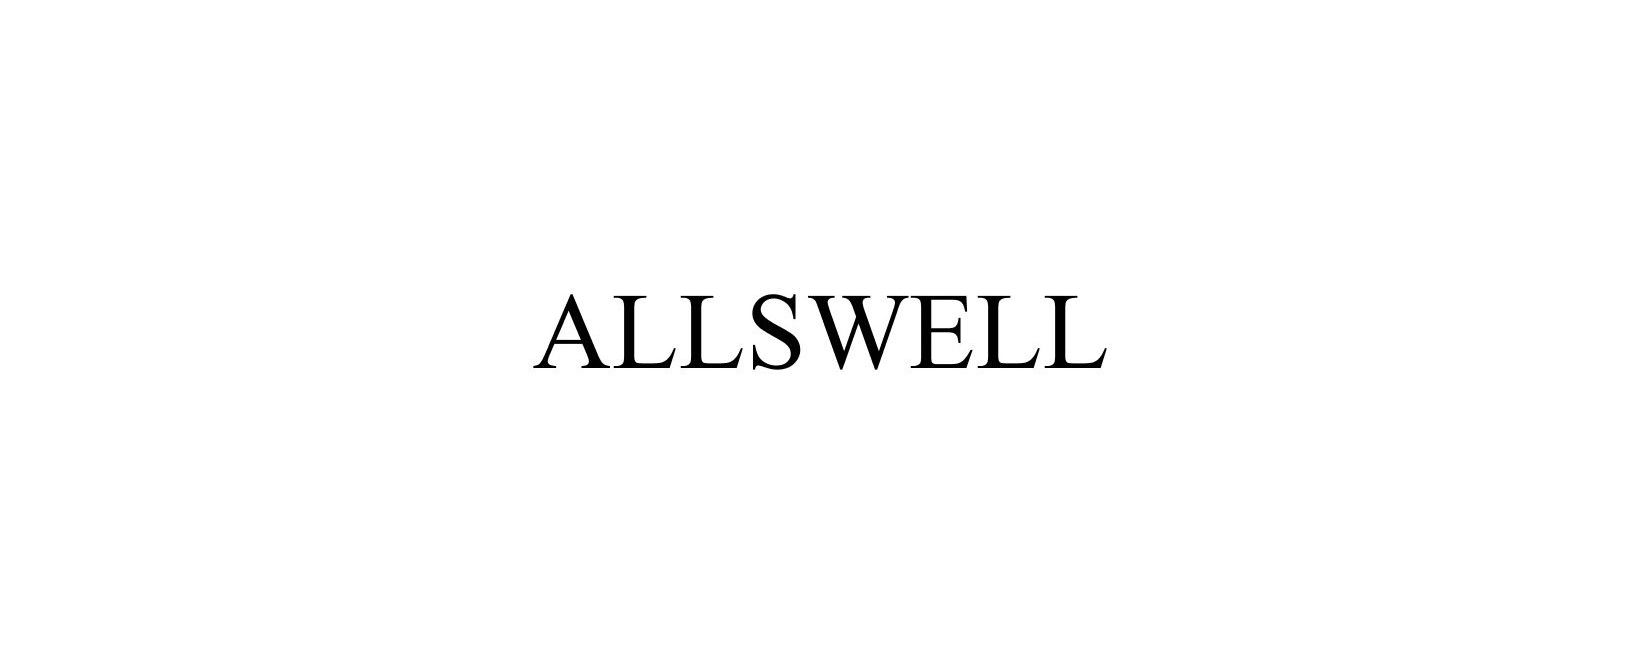 Allswell Coupon Code 2021